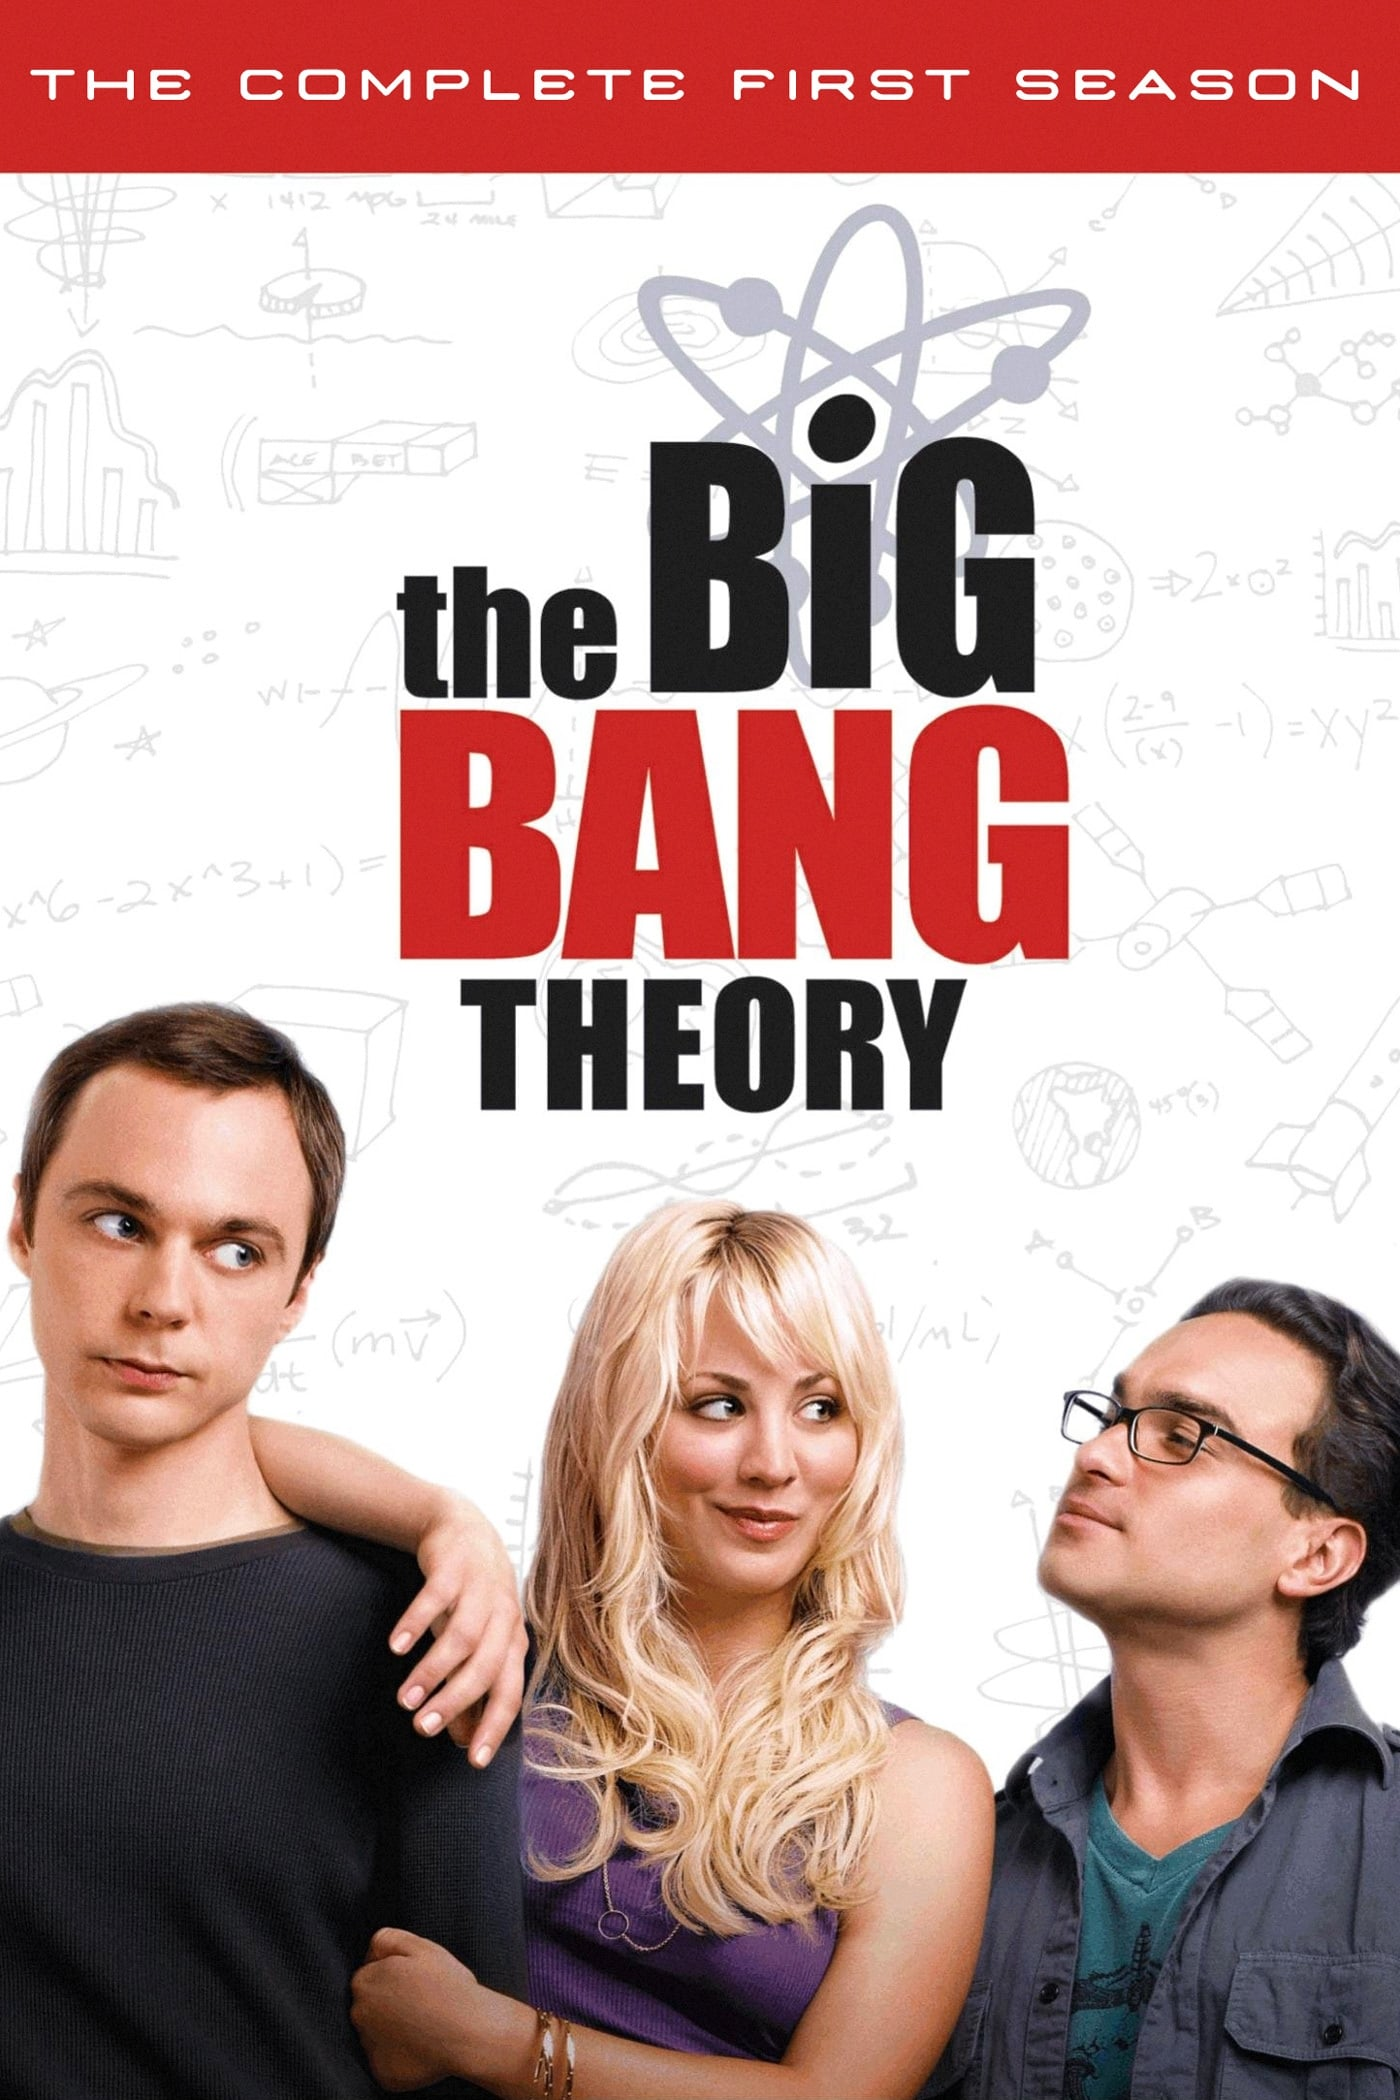 http://podsqod.com/the-big-bang-theory-1a-temporada-2007-bluray-720p-dual-audio-torrent-download/